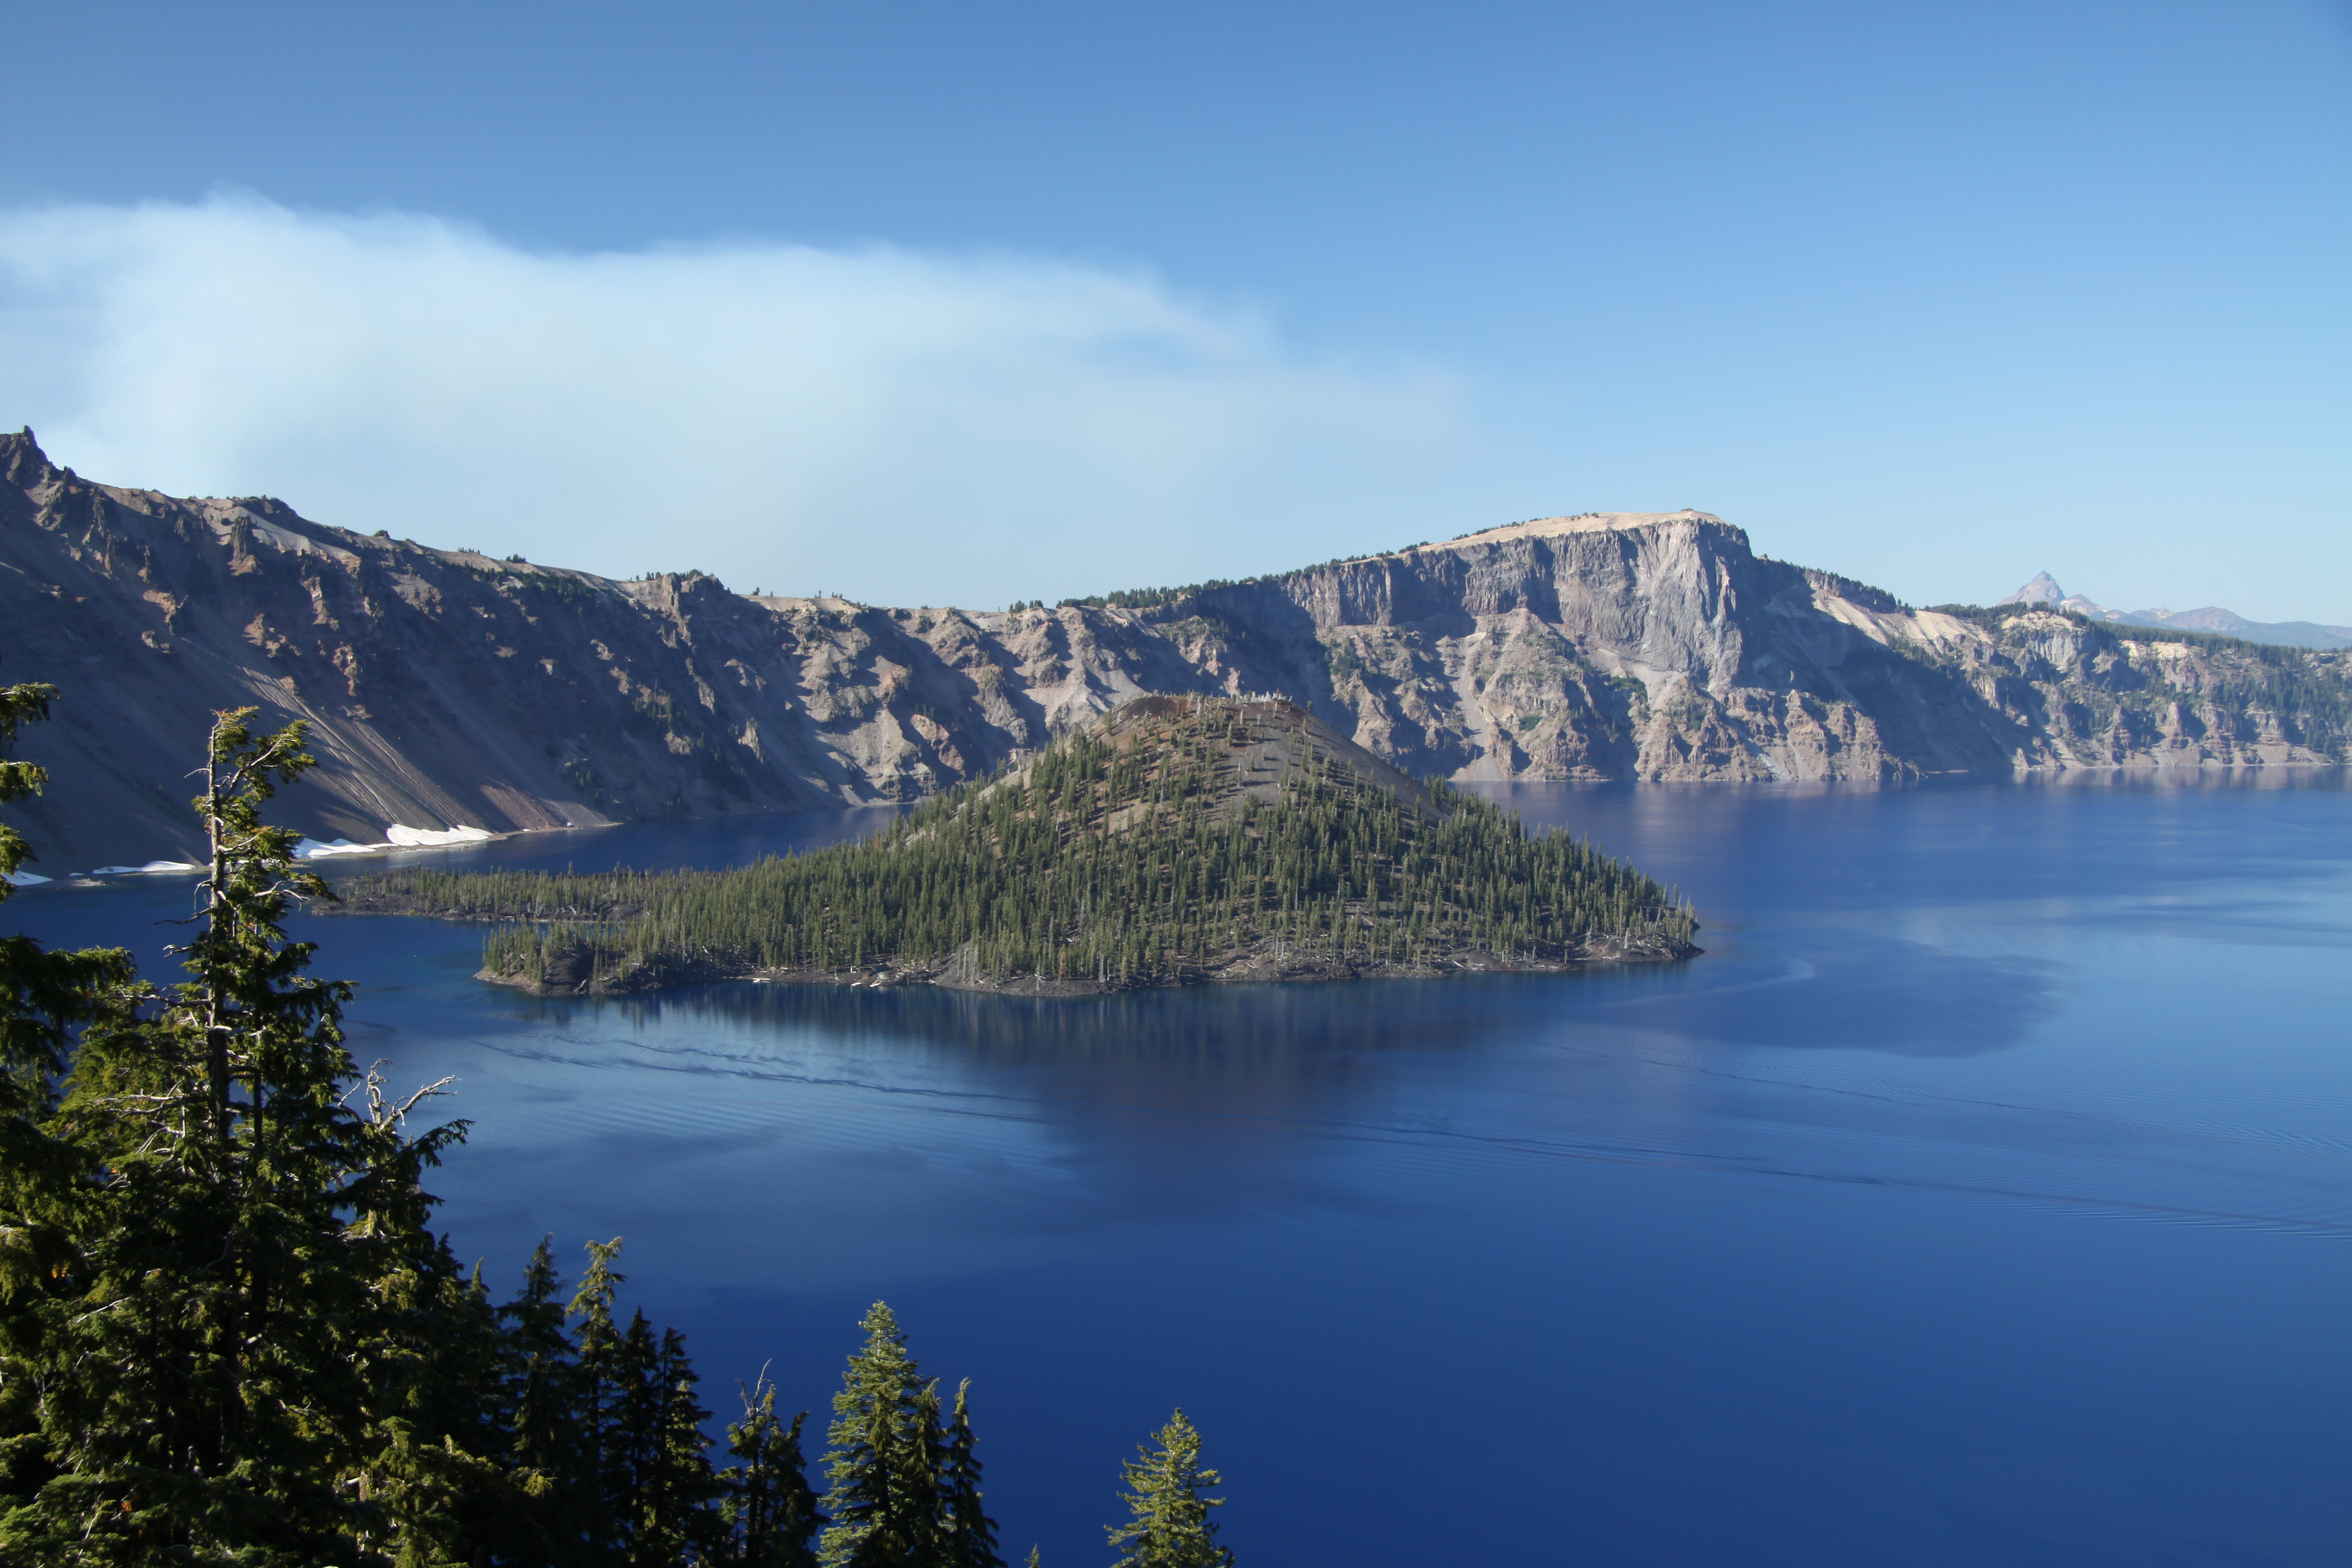 File:Crater Lake in Oregon in 2011 (9).JPG - Wikimedia Commons